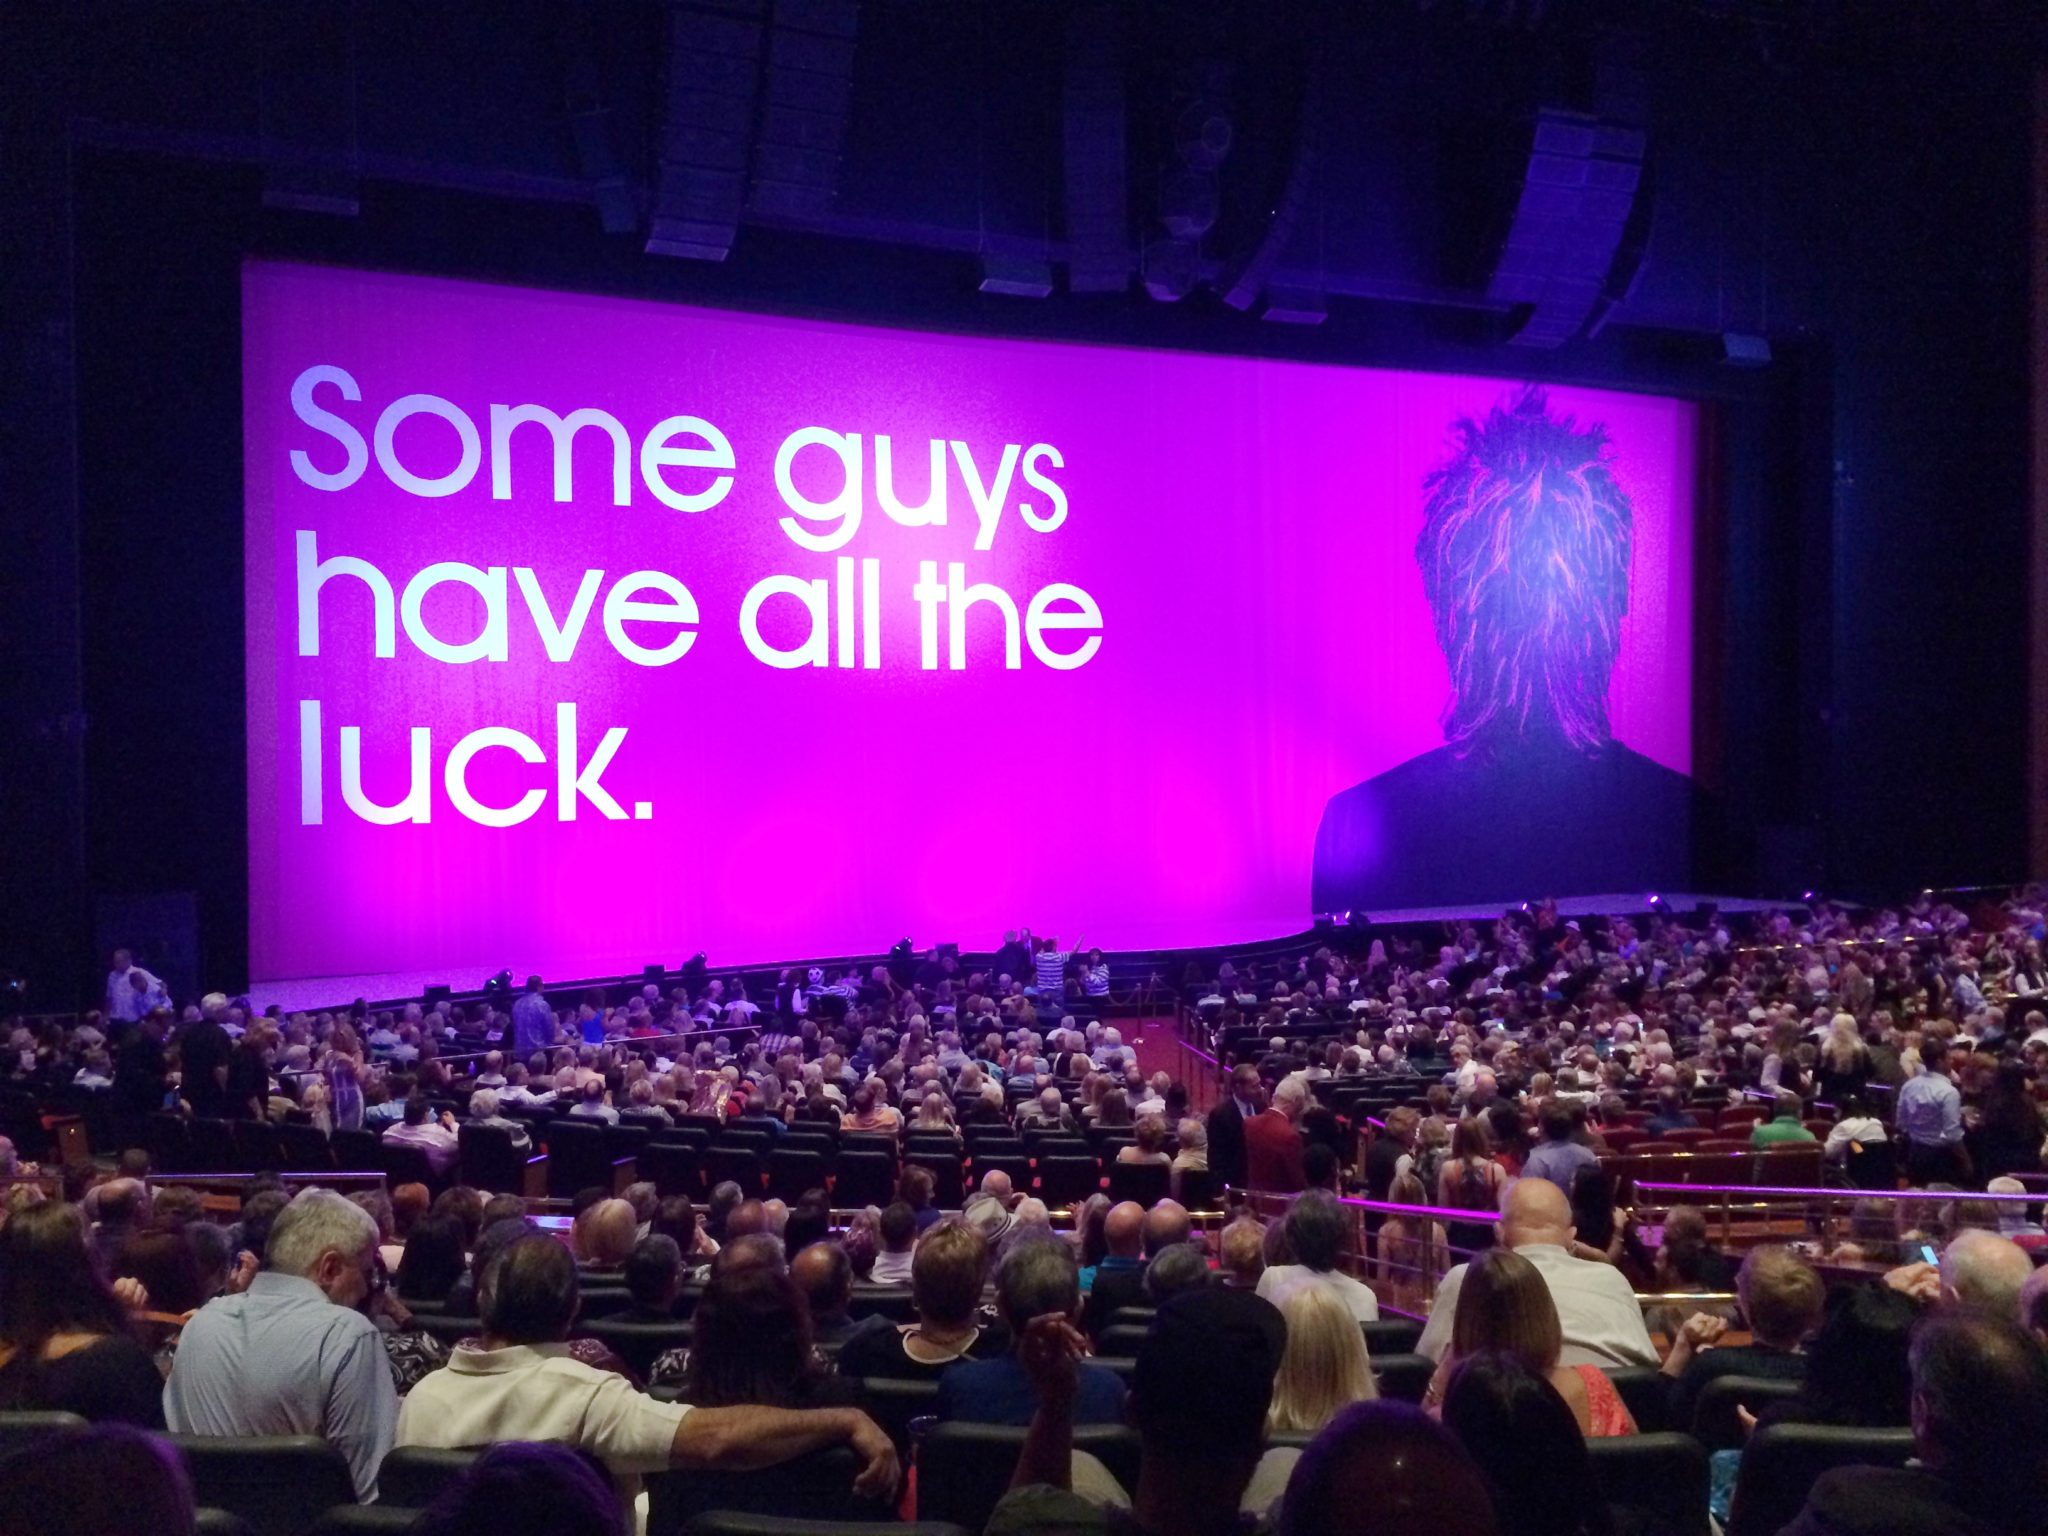 Enjoy Celebrity Radio's Rod Stewart The Hits Caesars Palace Live Las Vegas Review…. Rod Stewart is back in Las Vegas with his high energy & […]